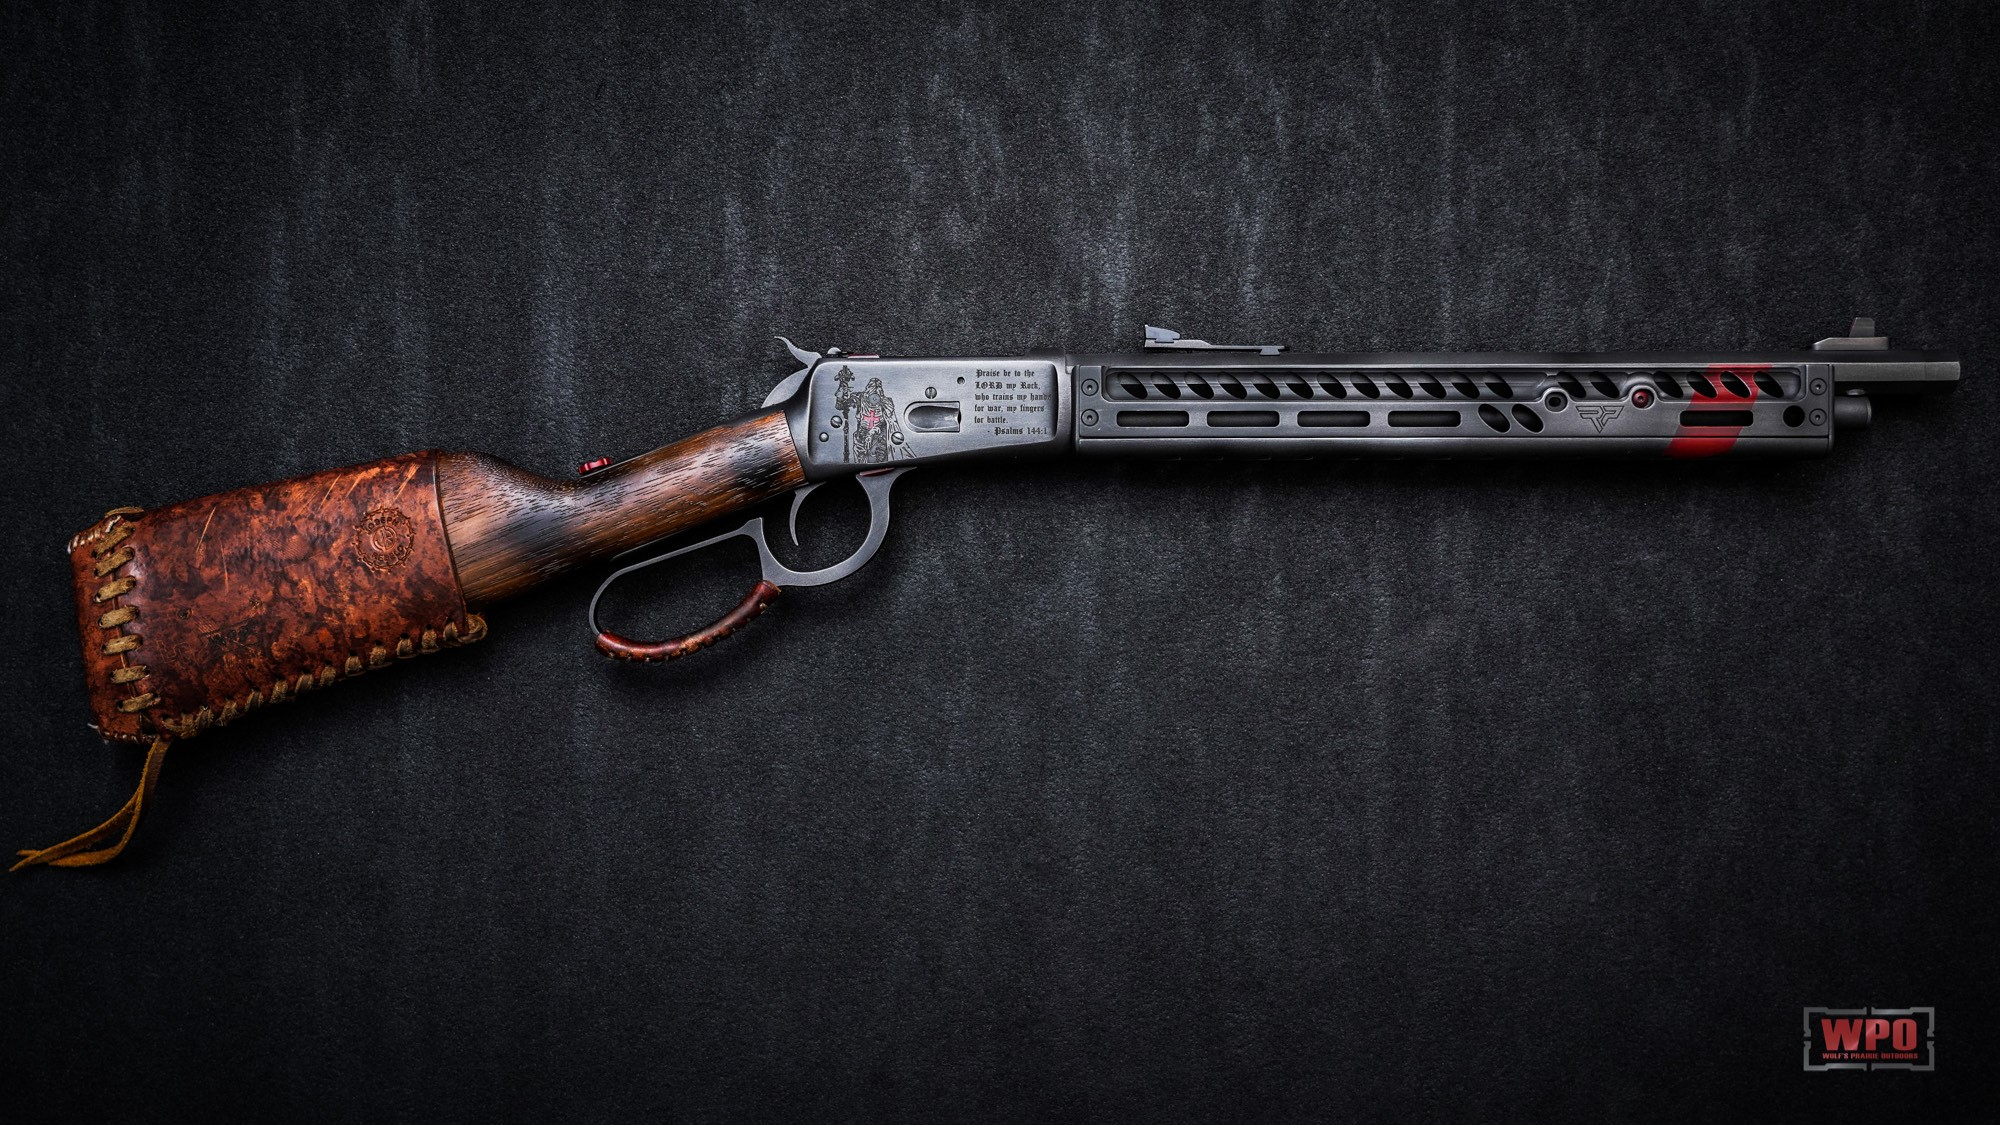 Some work done by Louthan Gunworks on a Rossi 44mag